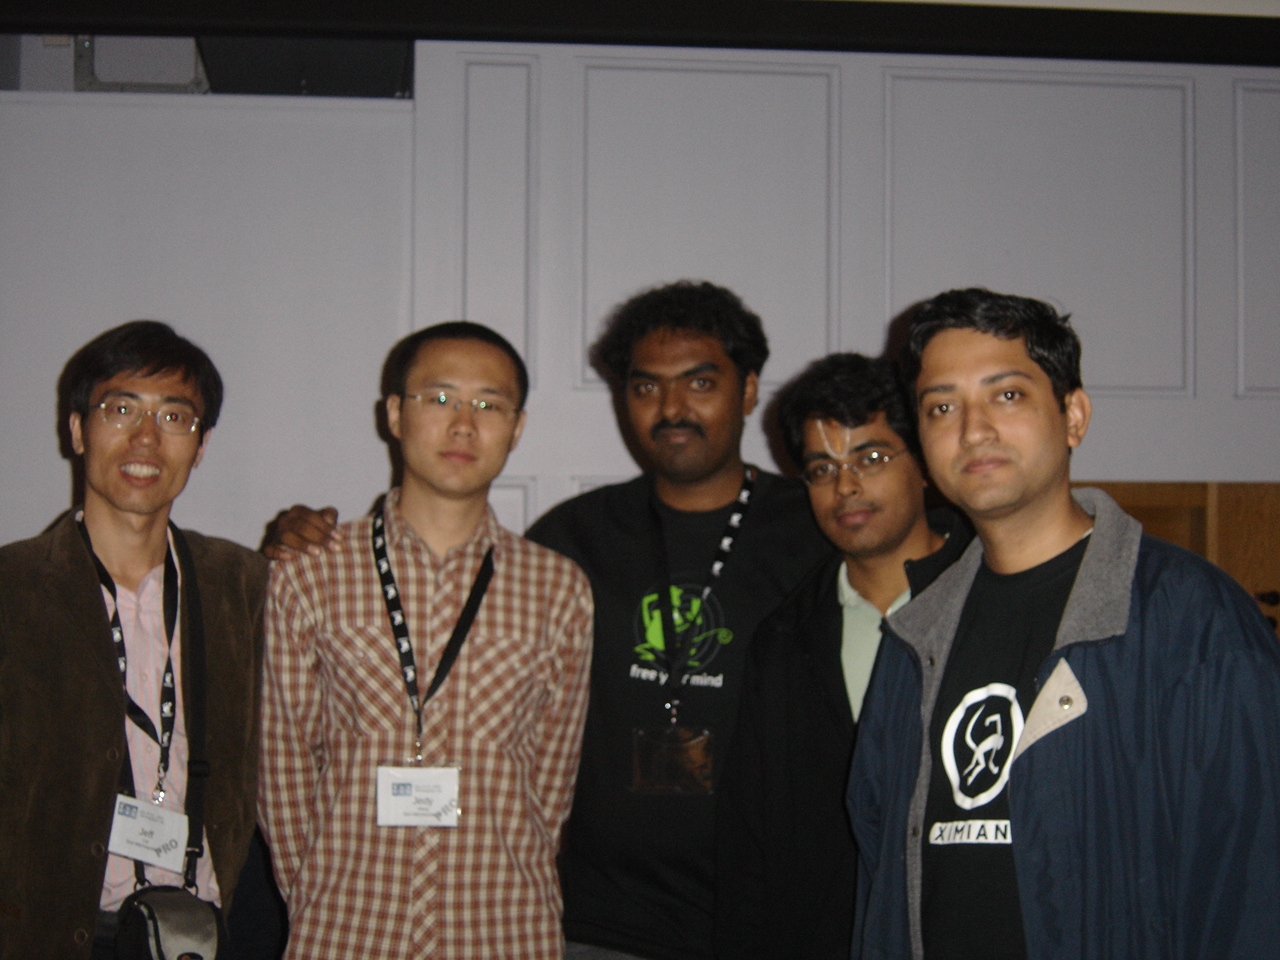 Jeff Cai, Jedy Wang, Me, Varadhan and Parag